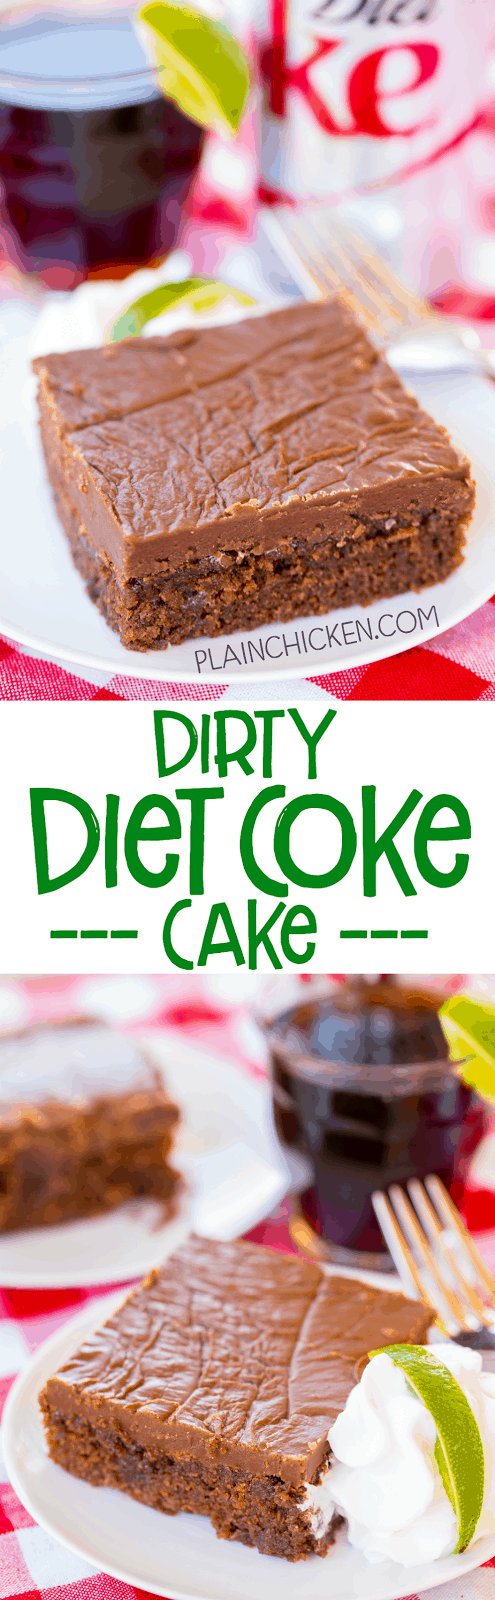 Dirty Coke Cake - our favorite drink in cake form! Homemade buttermilk chocolate cake and fudge frosting spiked with coconut and lime. SO good! Great for a potluck and tailgate party! A CRAZY delicious cake recipe!